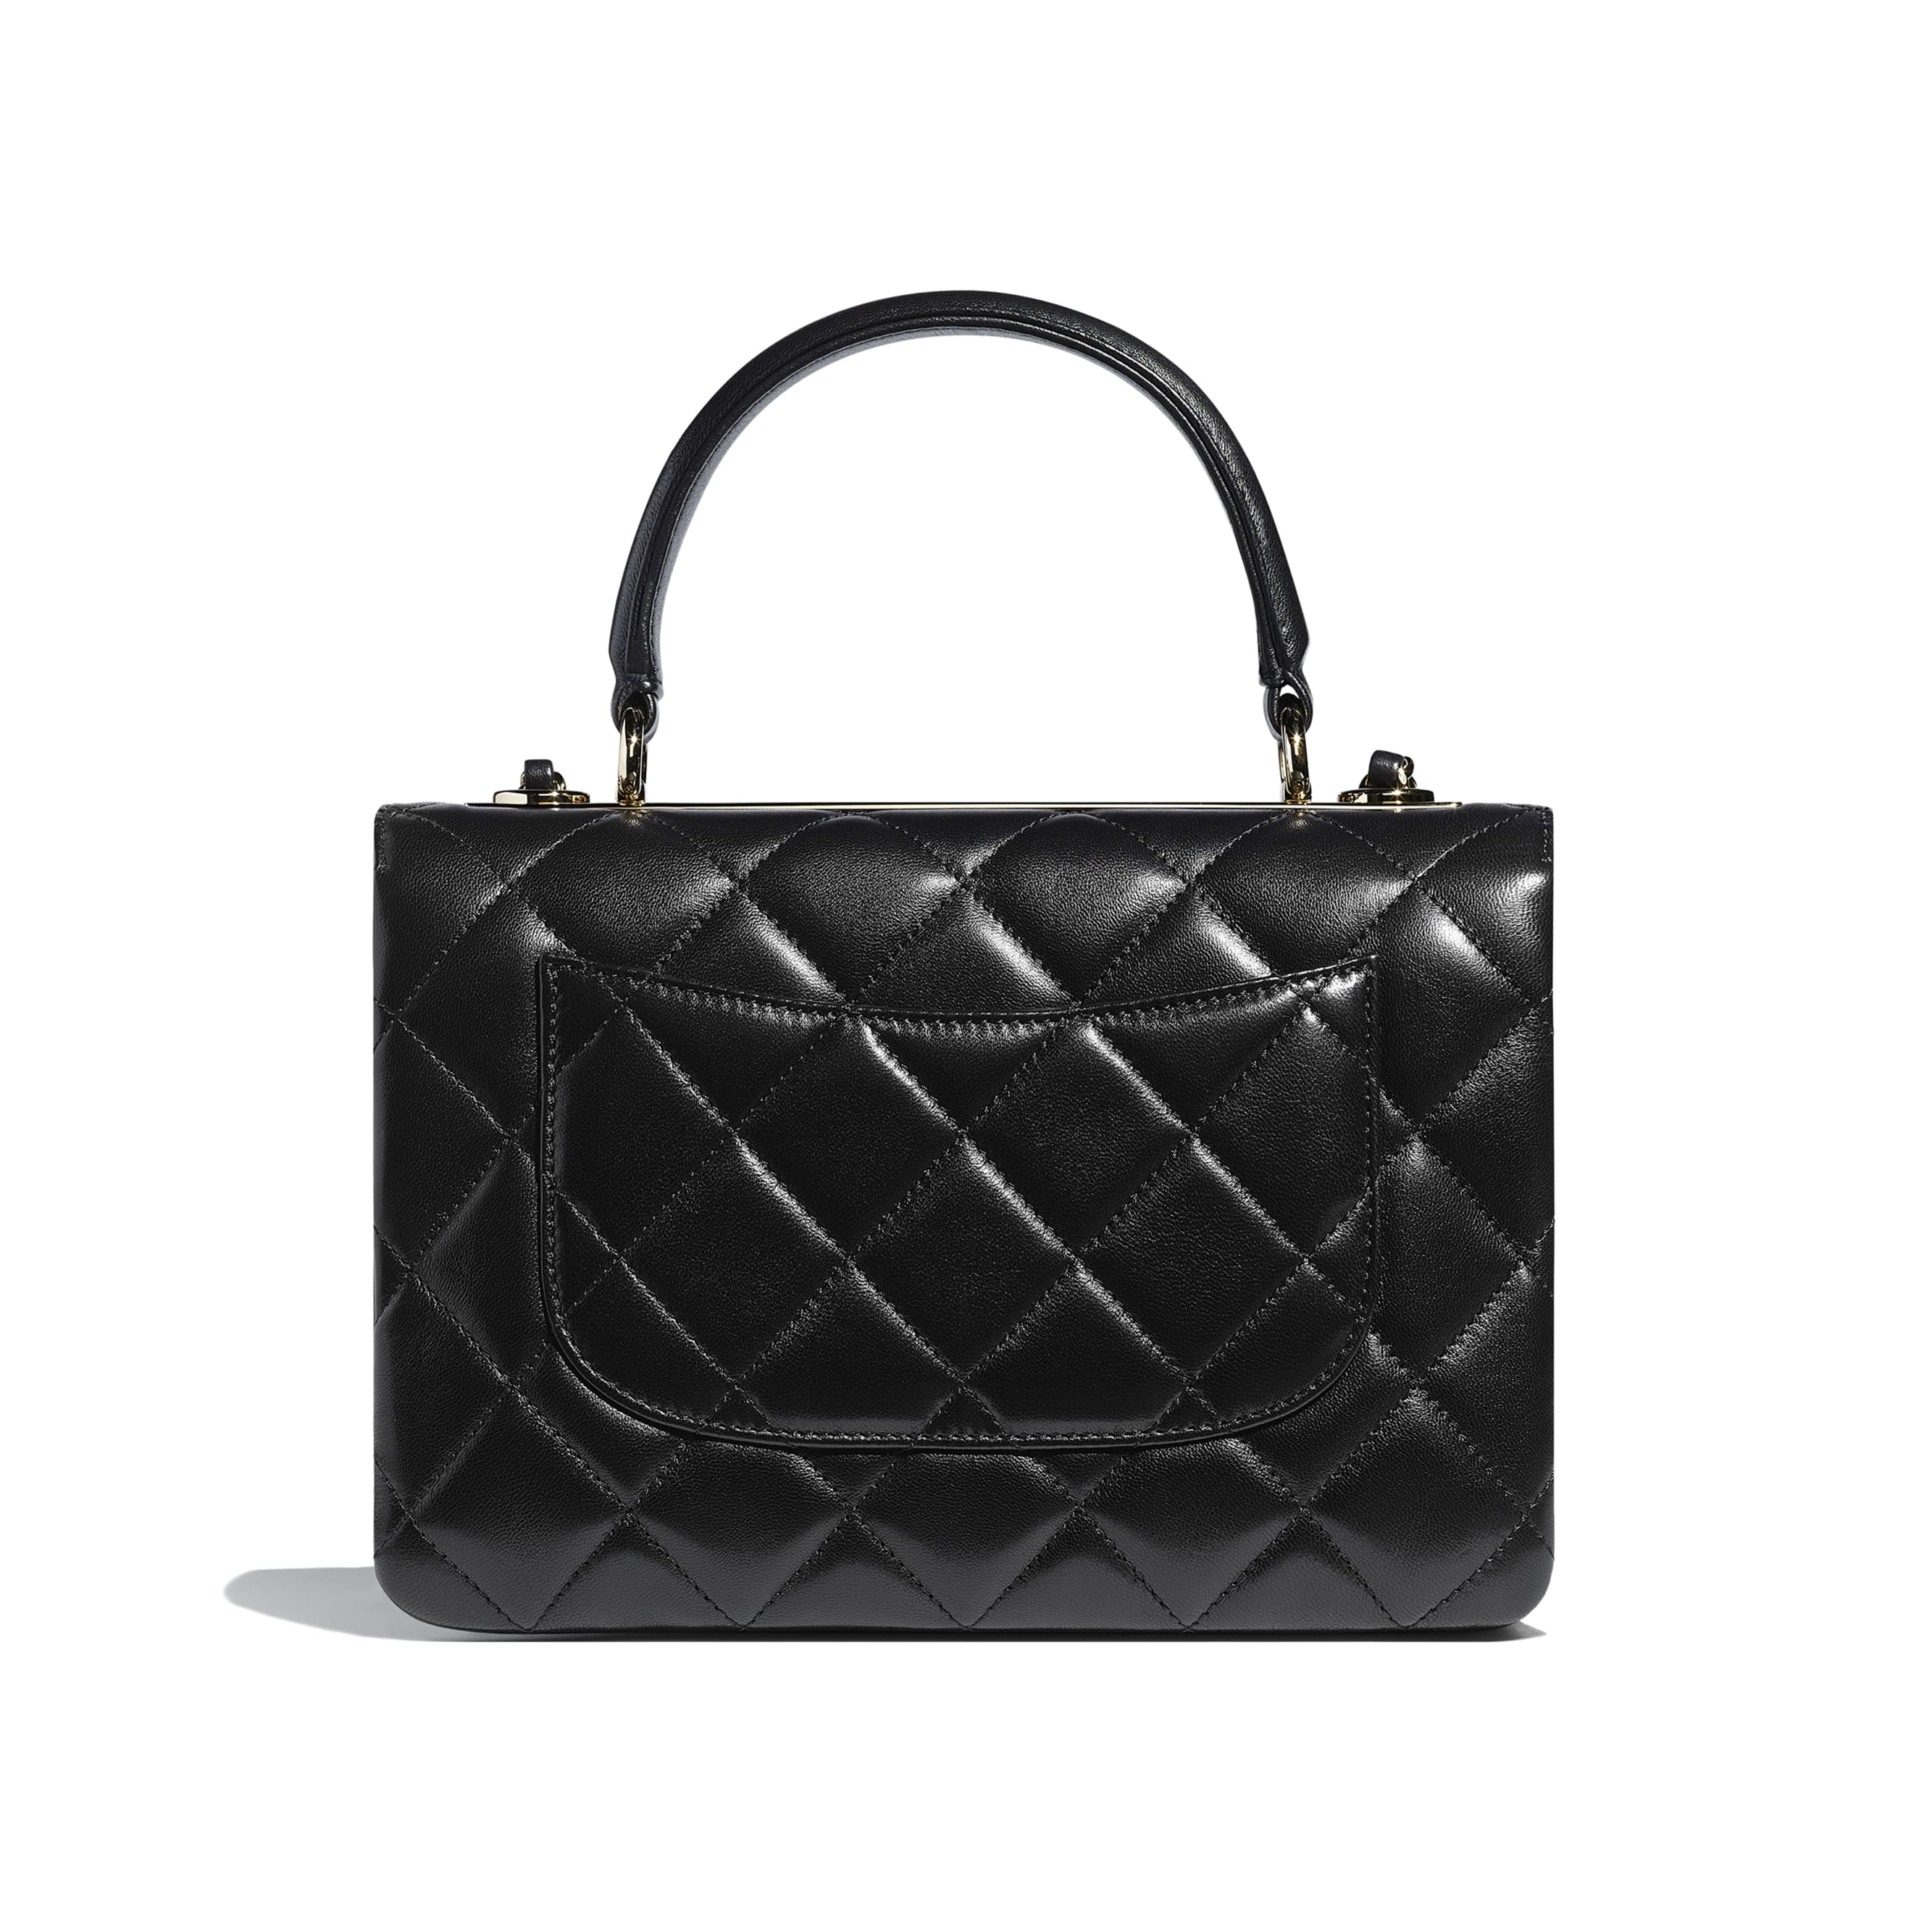 Flap Bag With Top Handle - Black - Lambskin - CHANEL - Alternative view - see standard sized version